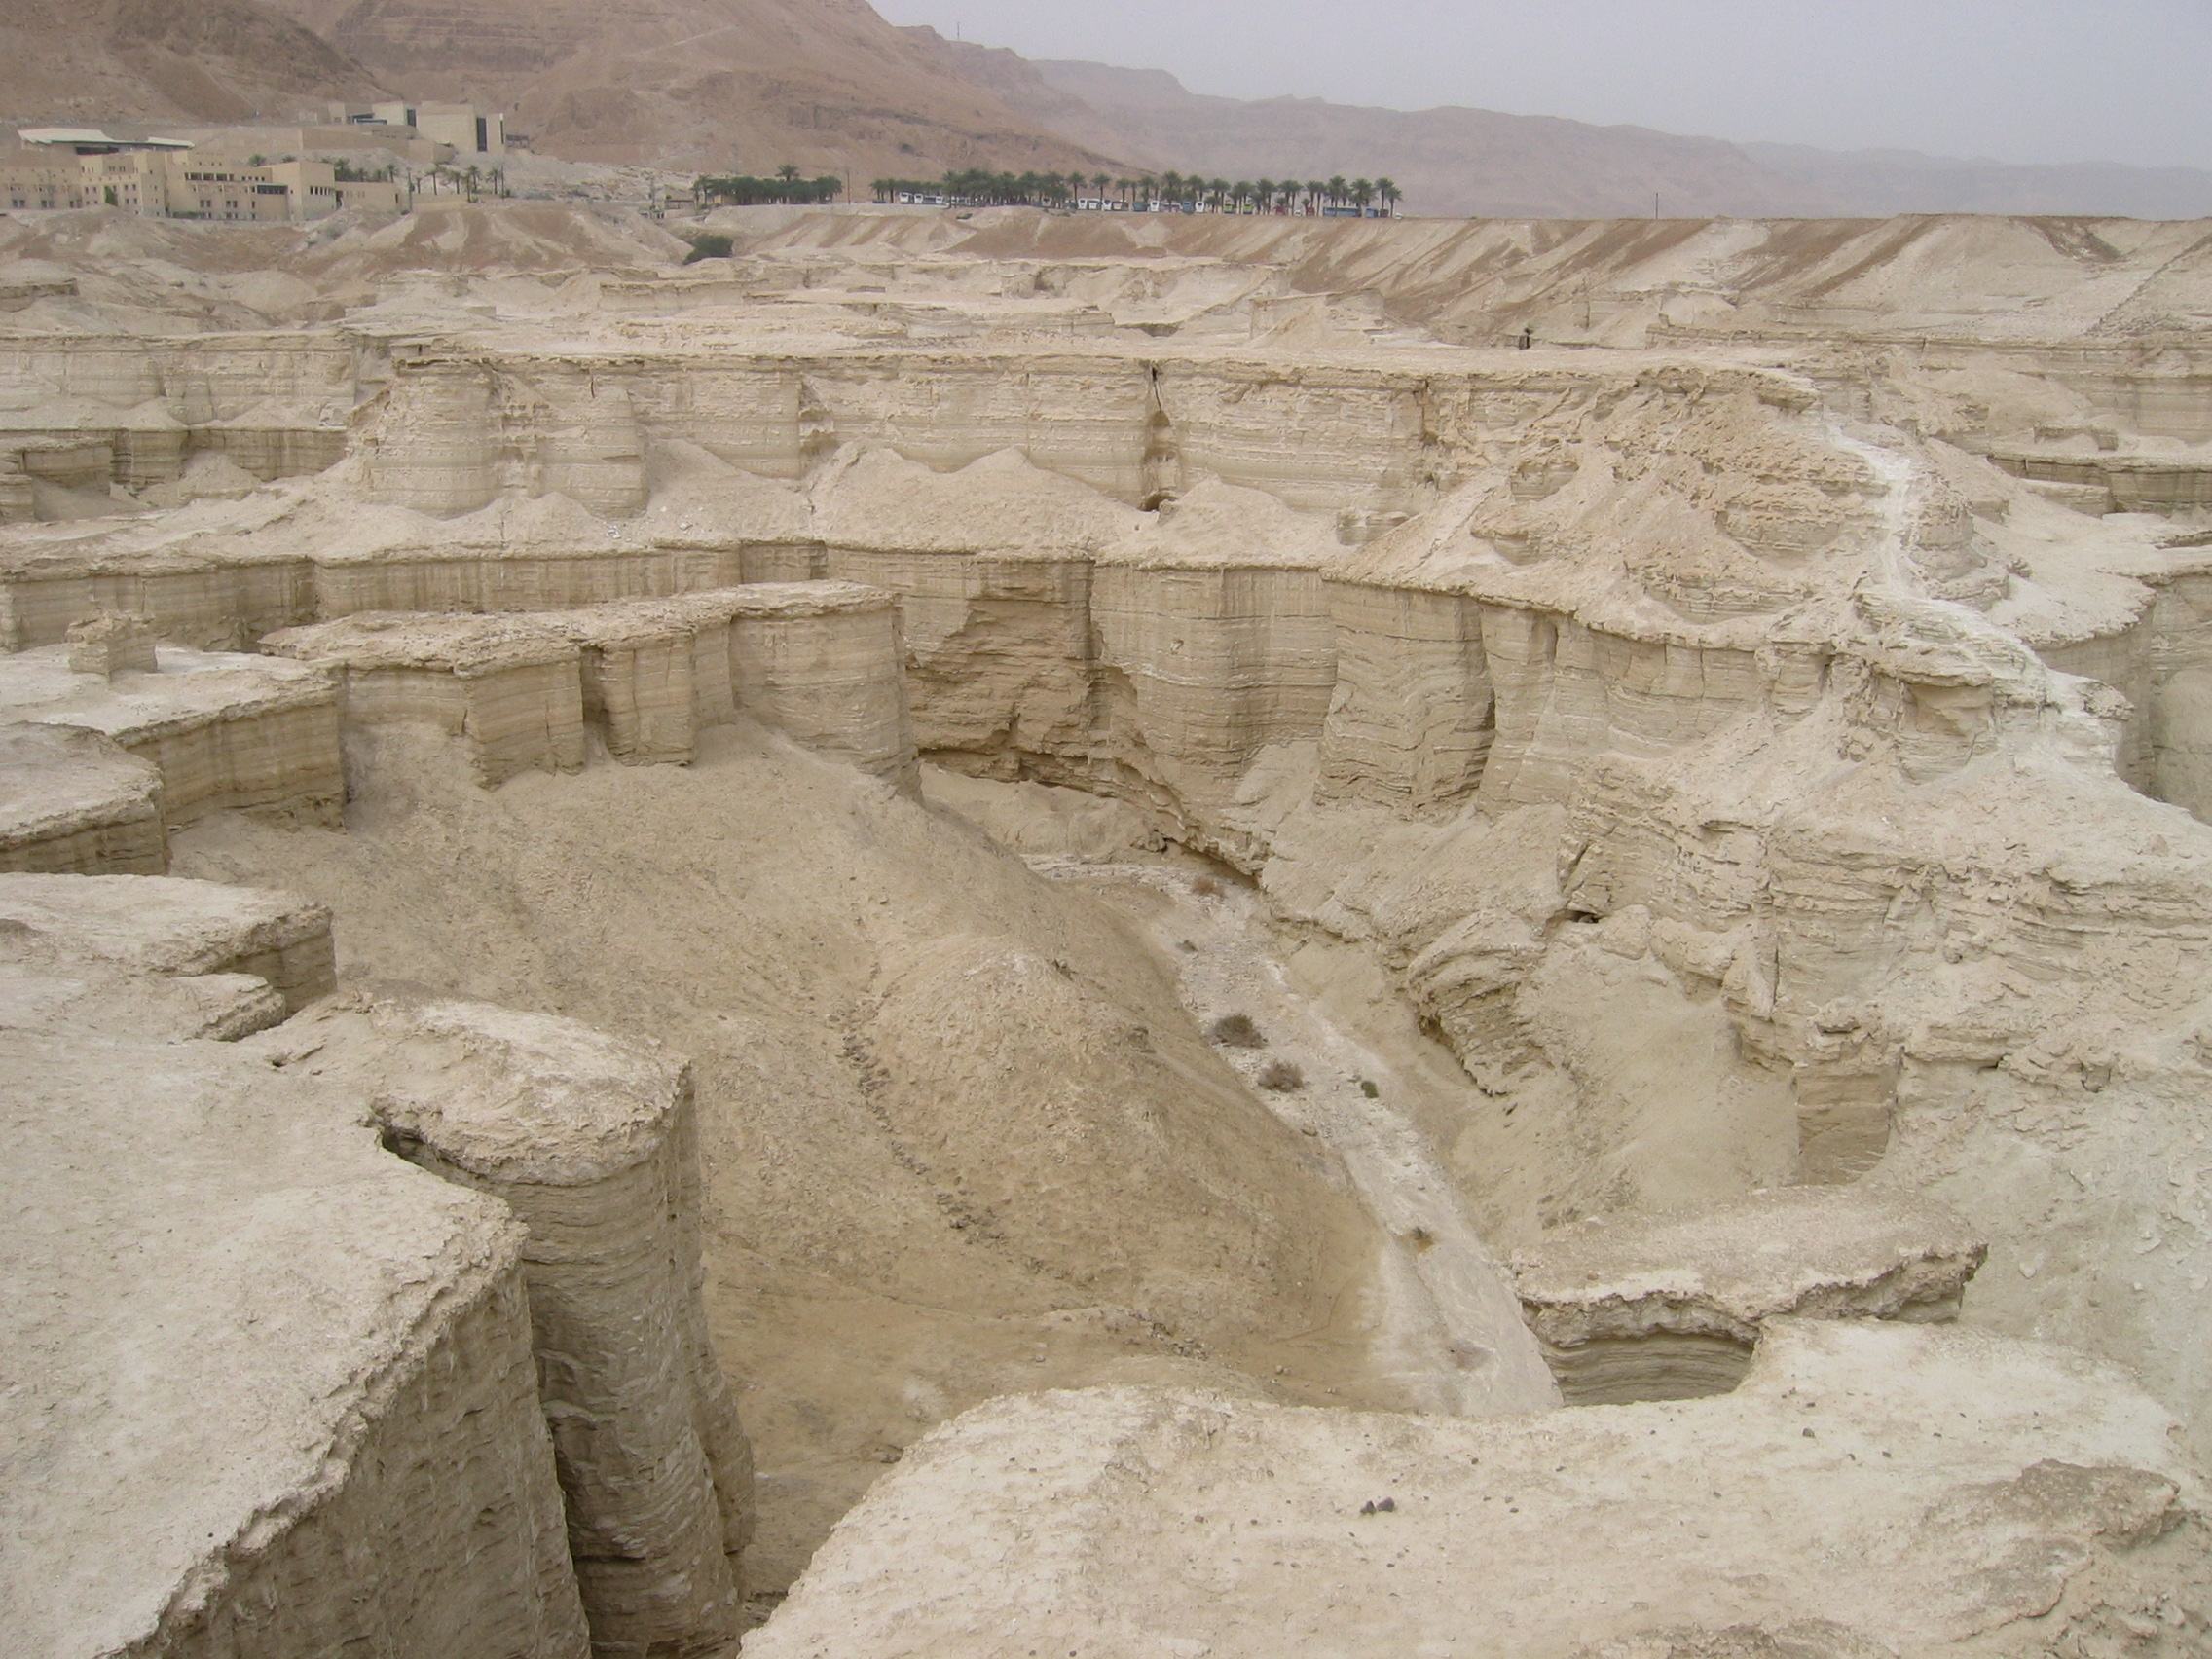 The area around what many believe to the location of ancient Sodom and Gomorrah.